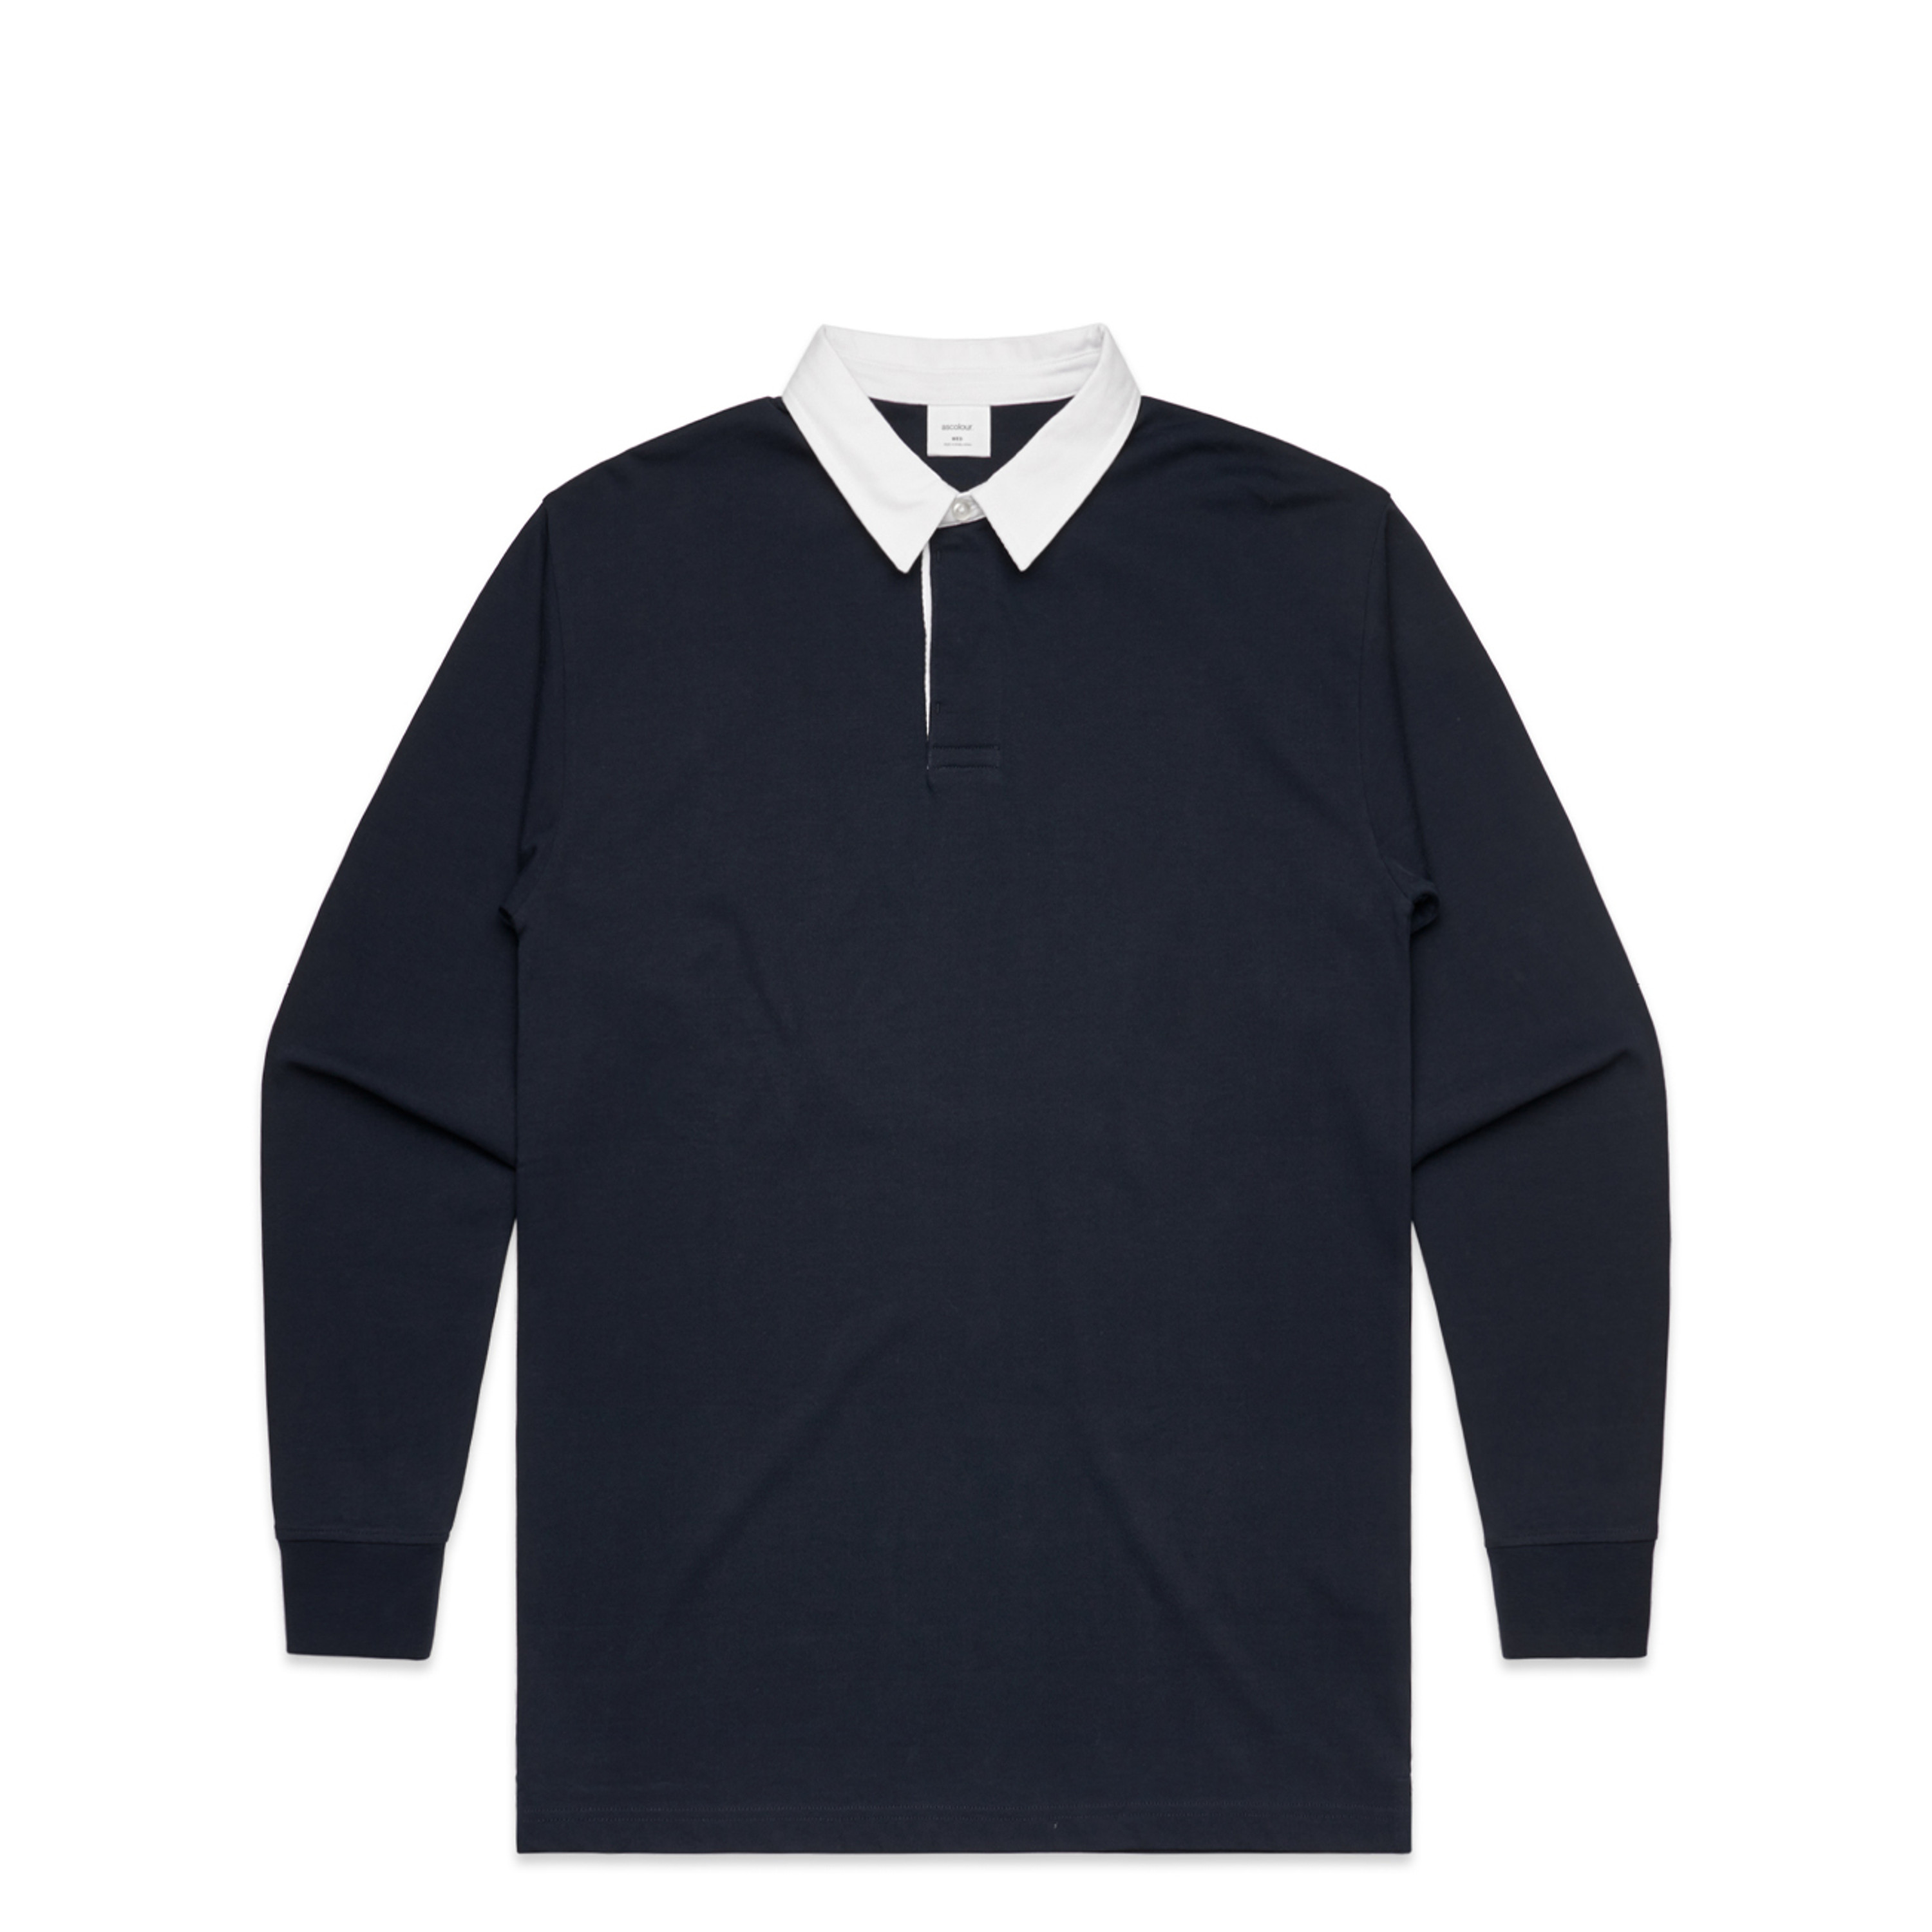 Mens Rugby Jersey - 5410